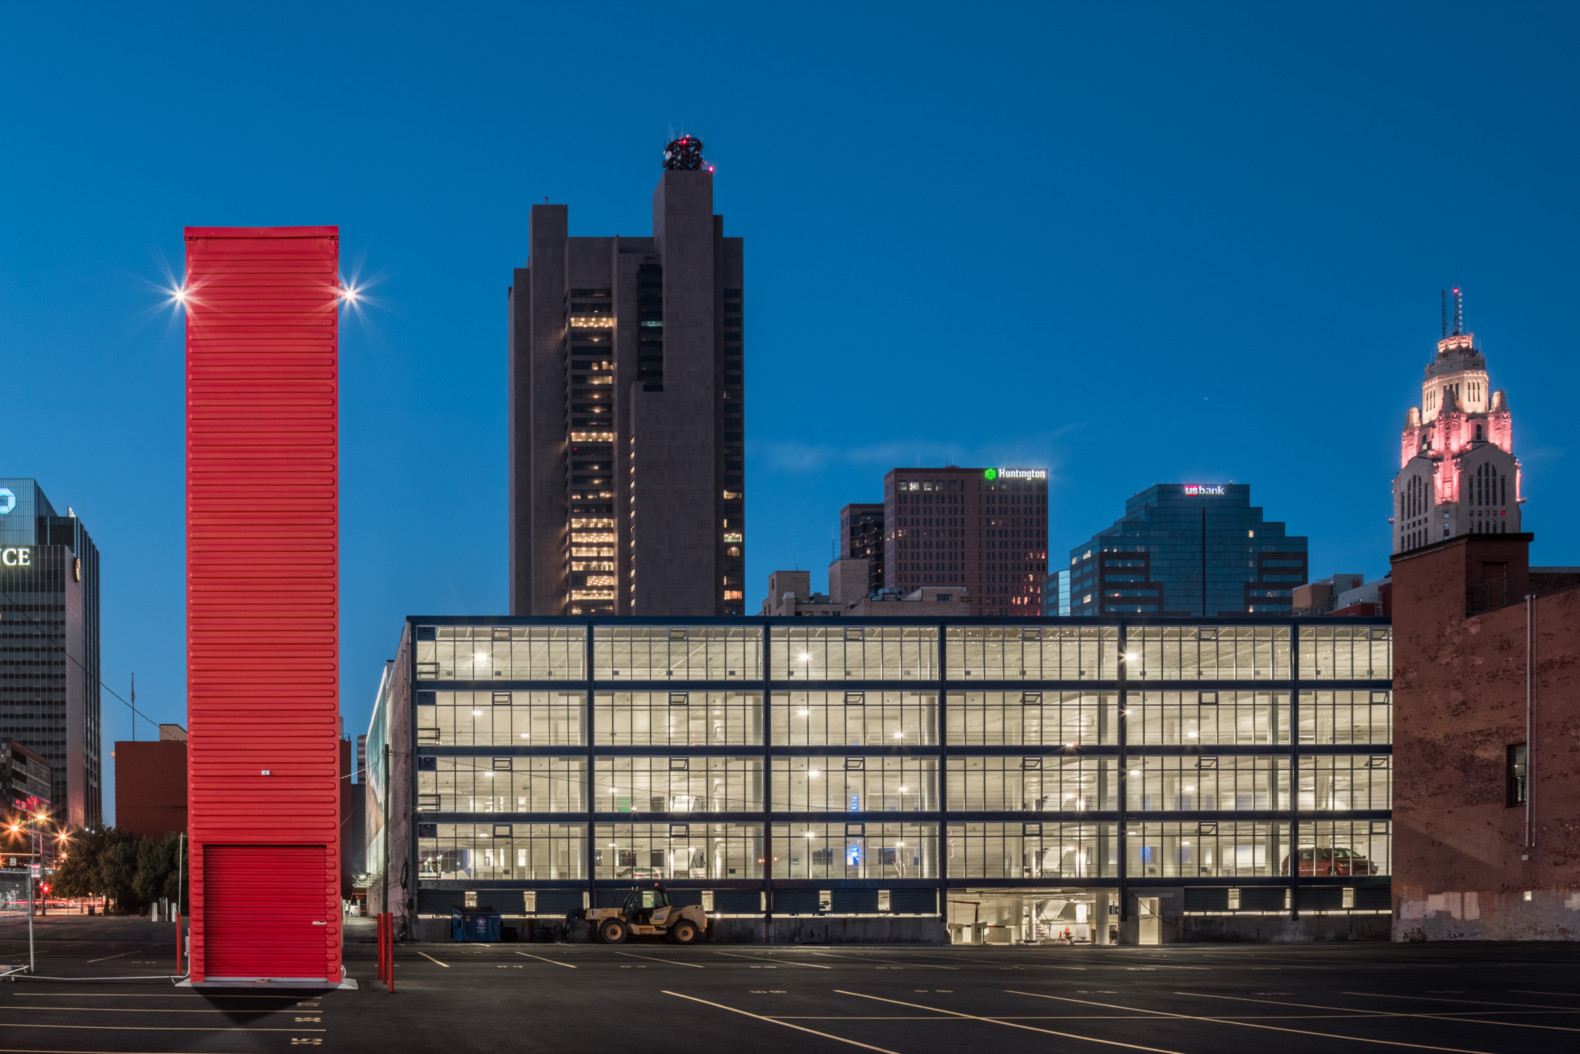 Old shipping container repurposed as a 40-foot-tall parking booth